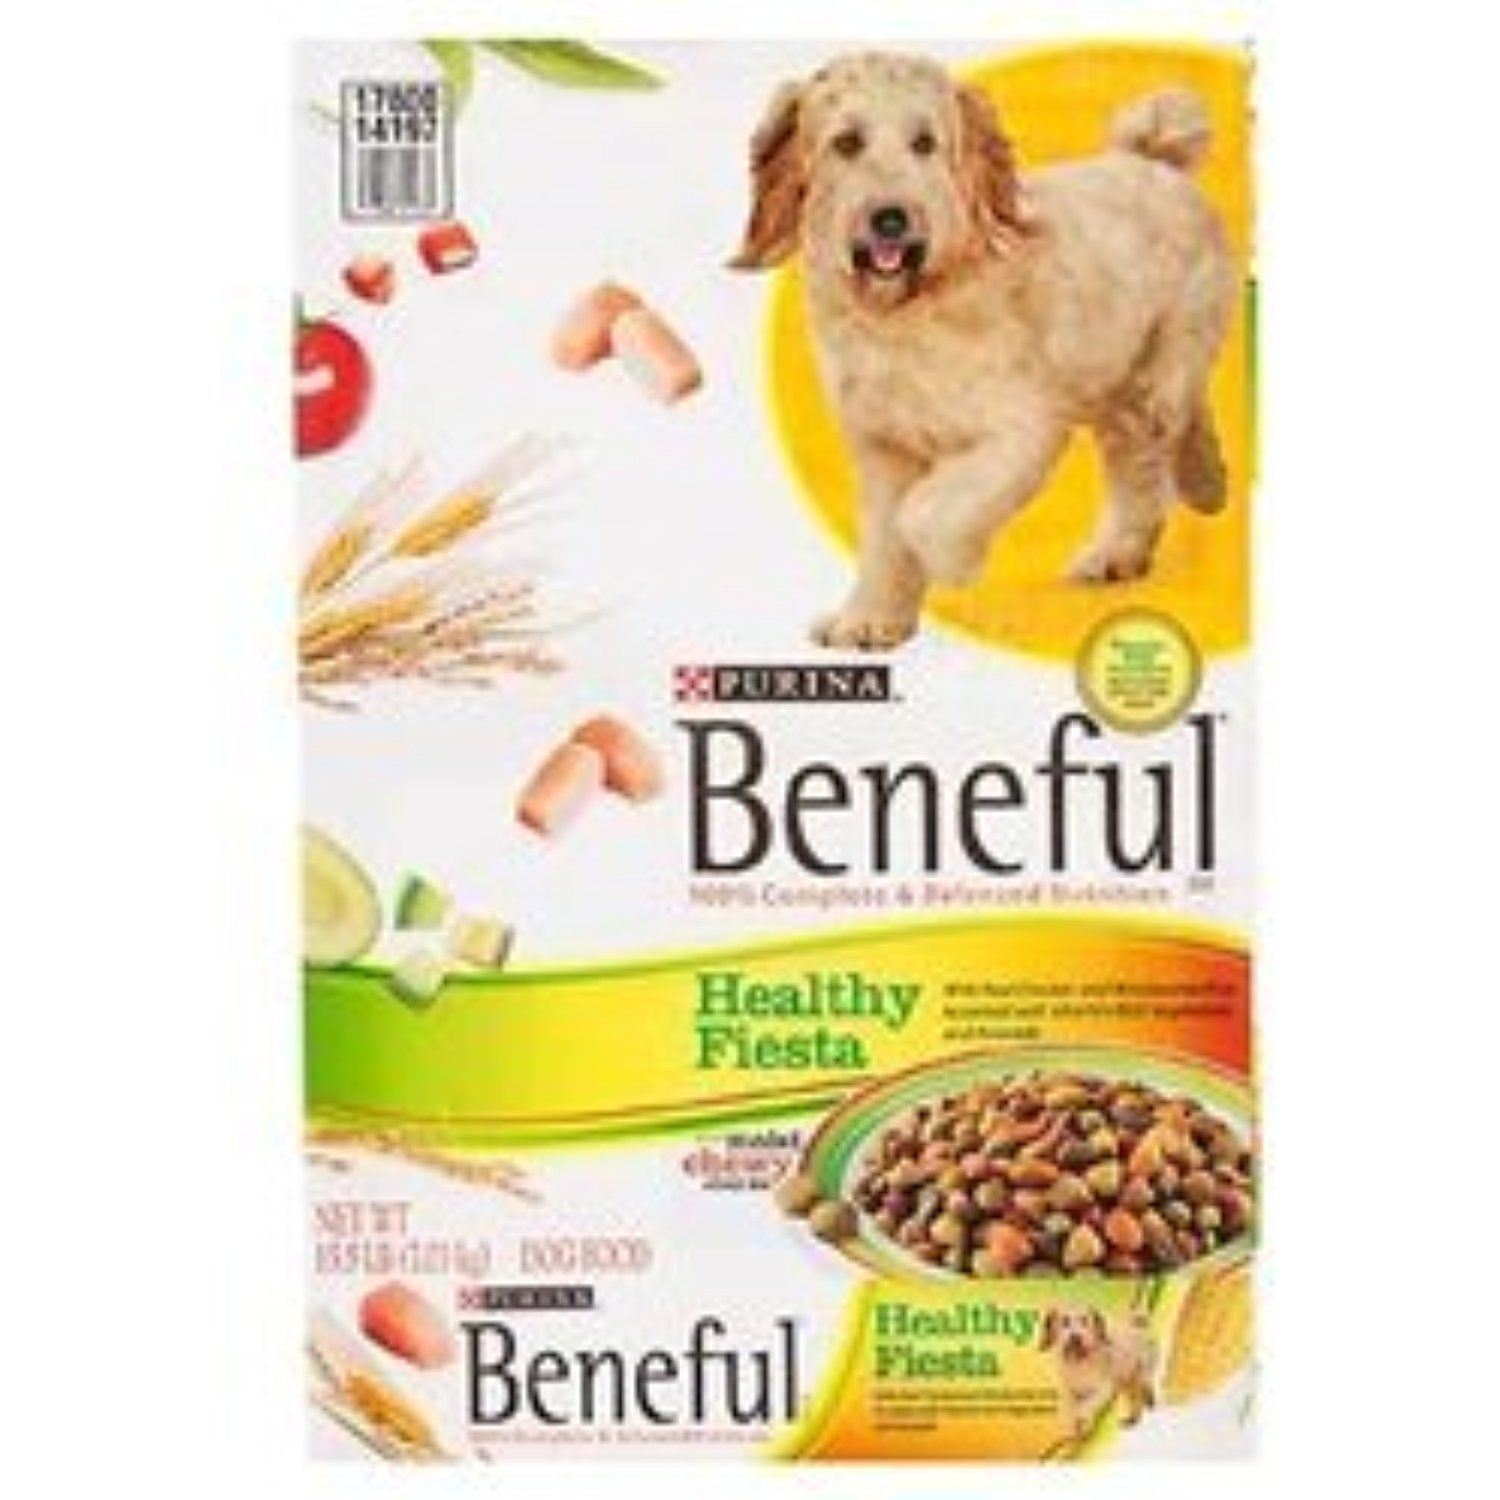 Beneful Dog Food Dry 15.5 LB (Pack of 2) You can read